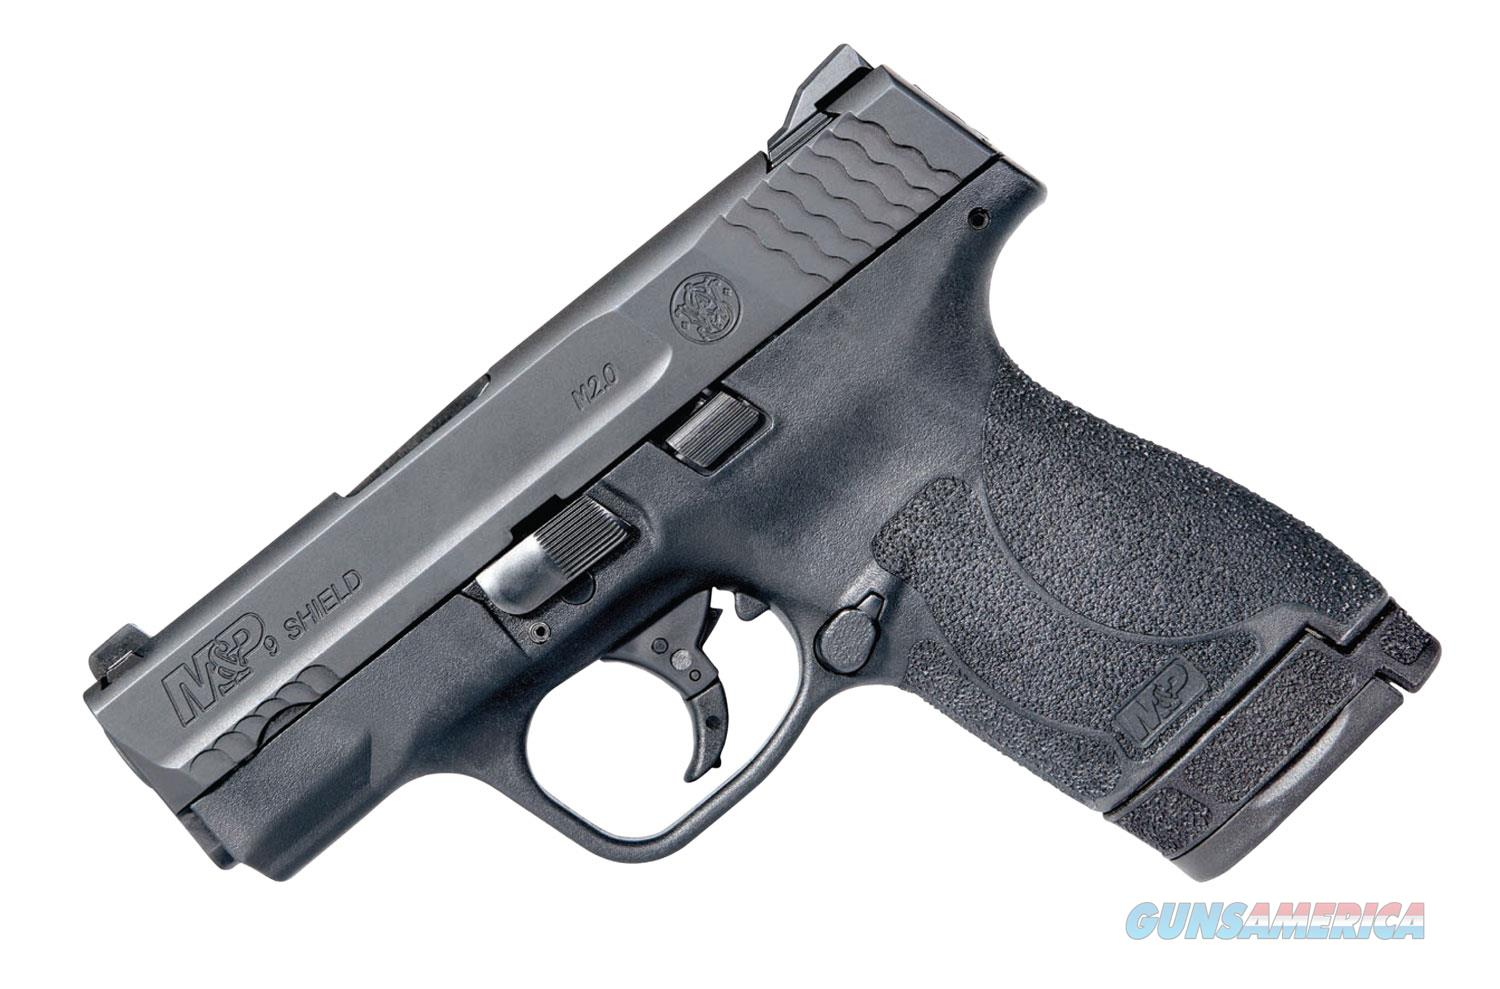 """Smith & Wesson 11808 M&P 9 Shield M2.0 9mm 7+1/8+1 NMS """"NO CREDIT CARD FEE""""  Guns > Pistols > Smith & Wesson Pistols - Autos > Shield"""